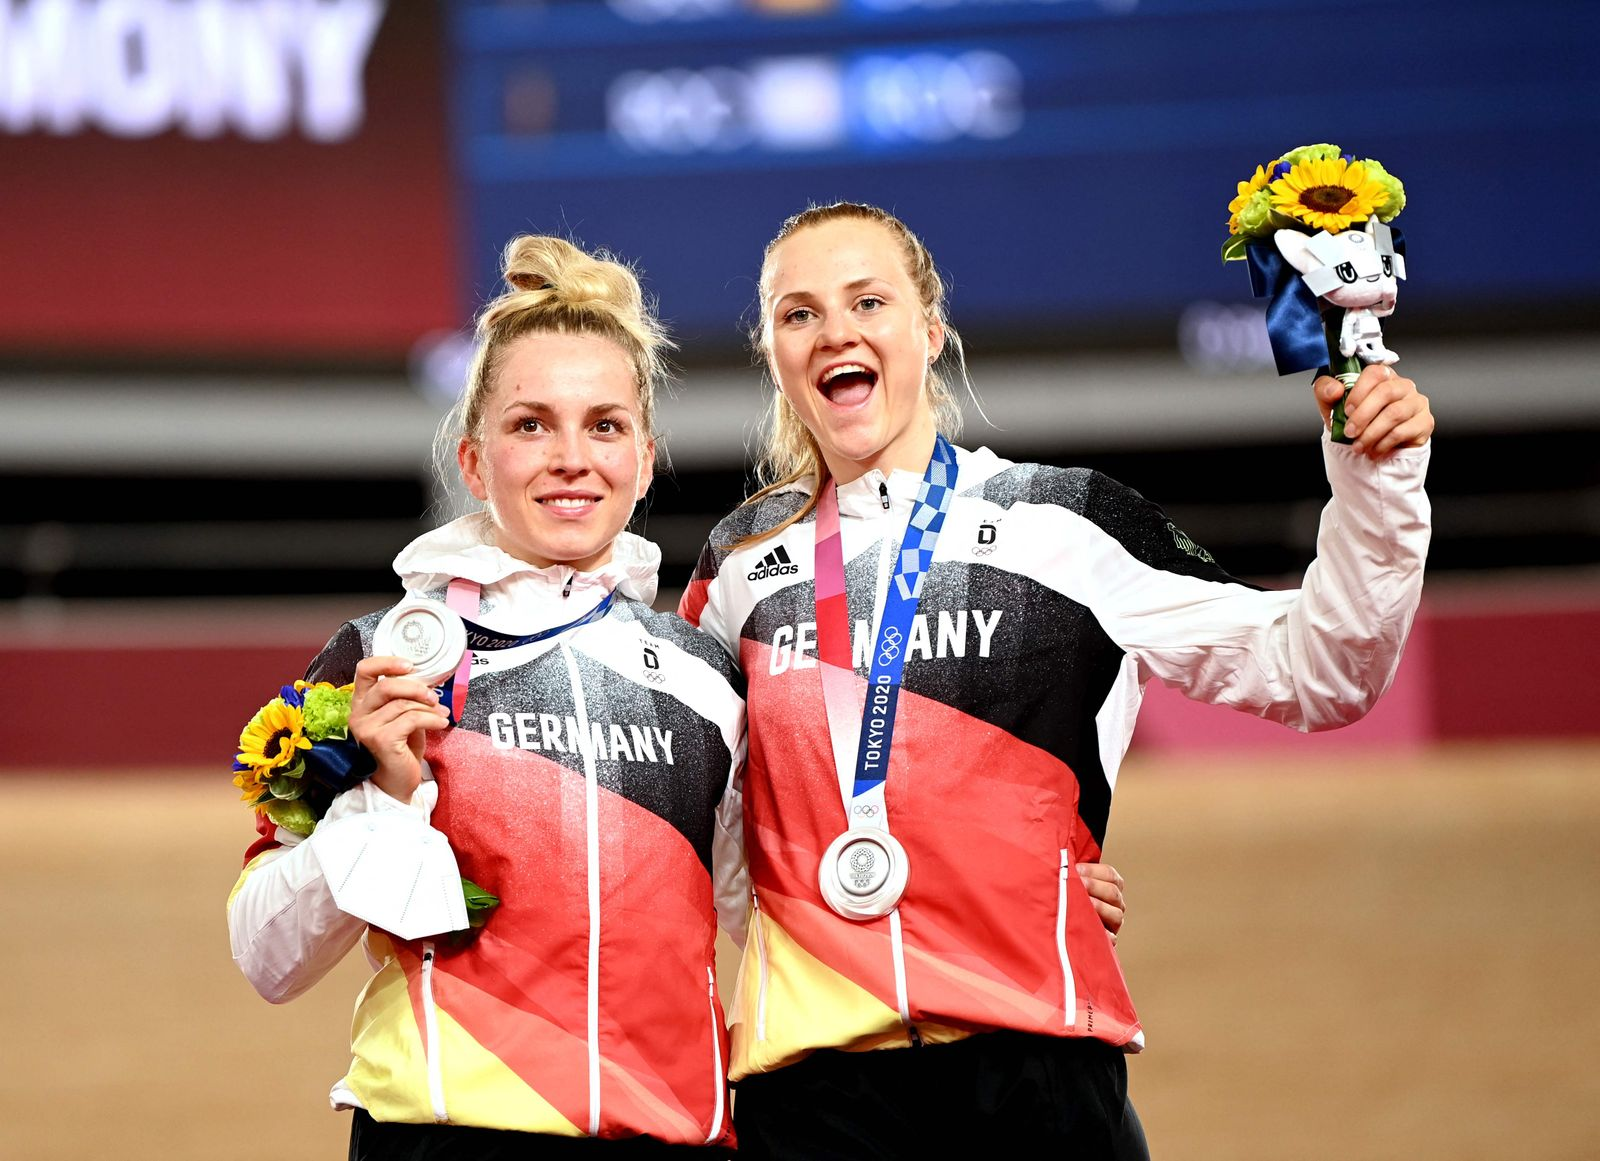 CYCLING-TRACK-OLY-2020-2021-TOKYO-PODIUM